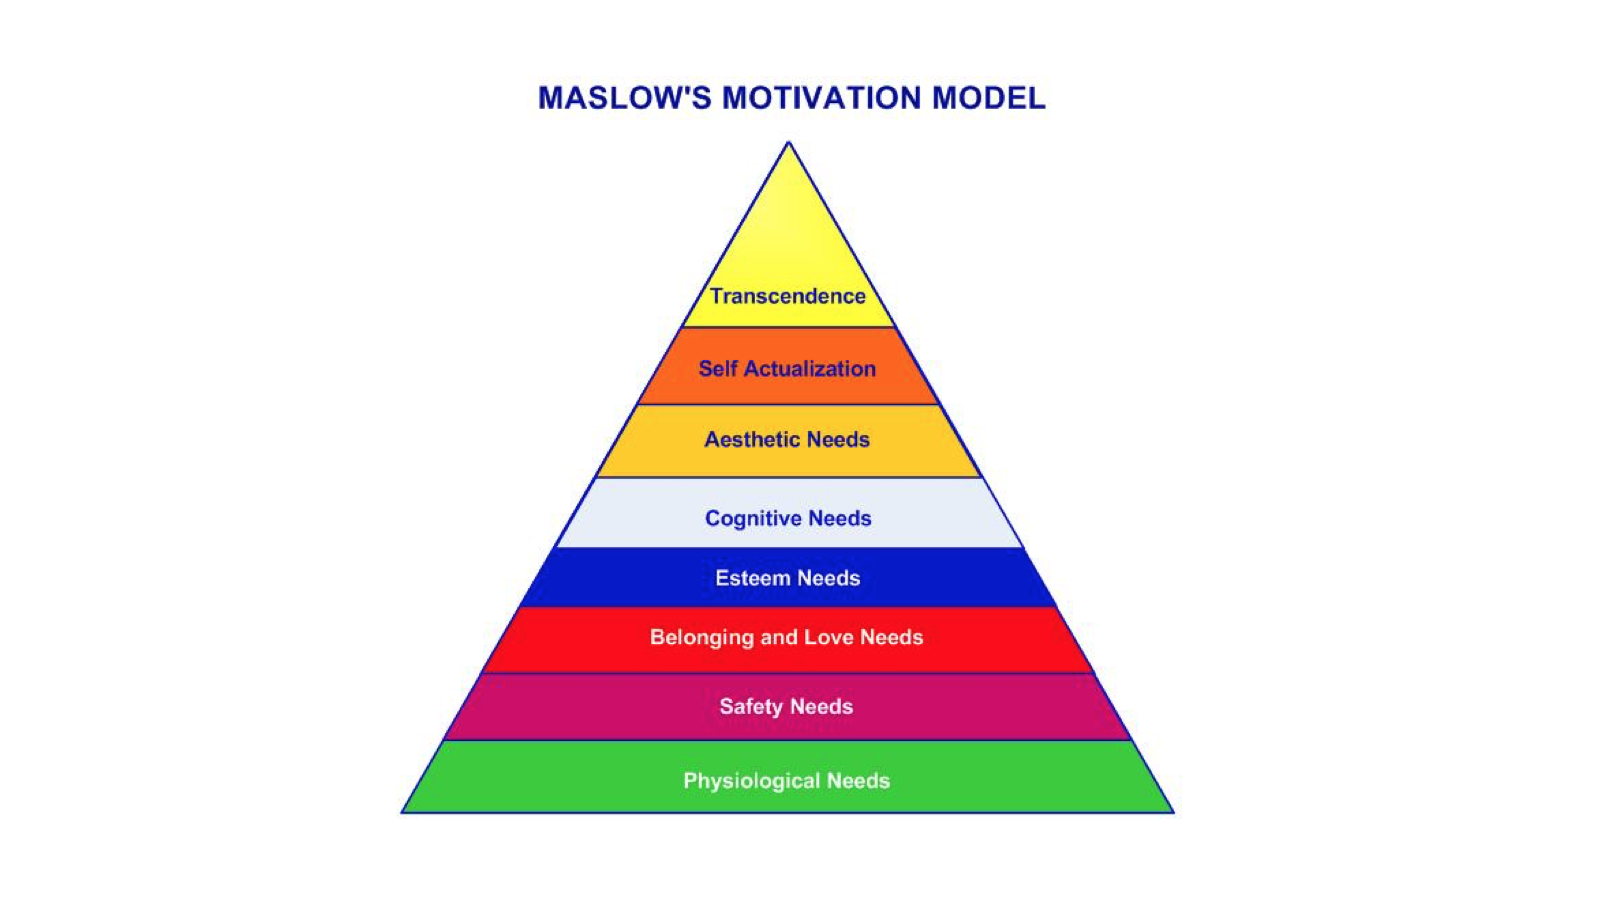 Maslow's model shows us that our most basic needs, eg physiological needs, must be met before other needs can be met. Therefore, before we educate people to expand their minds, shouldn't we make sure that they truly understand what sustains us: fresh air to breathe, nutritious food to eat and a temperature that people can live in.